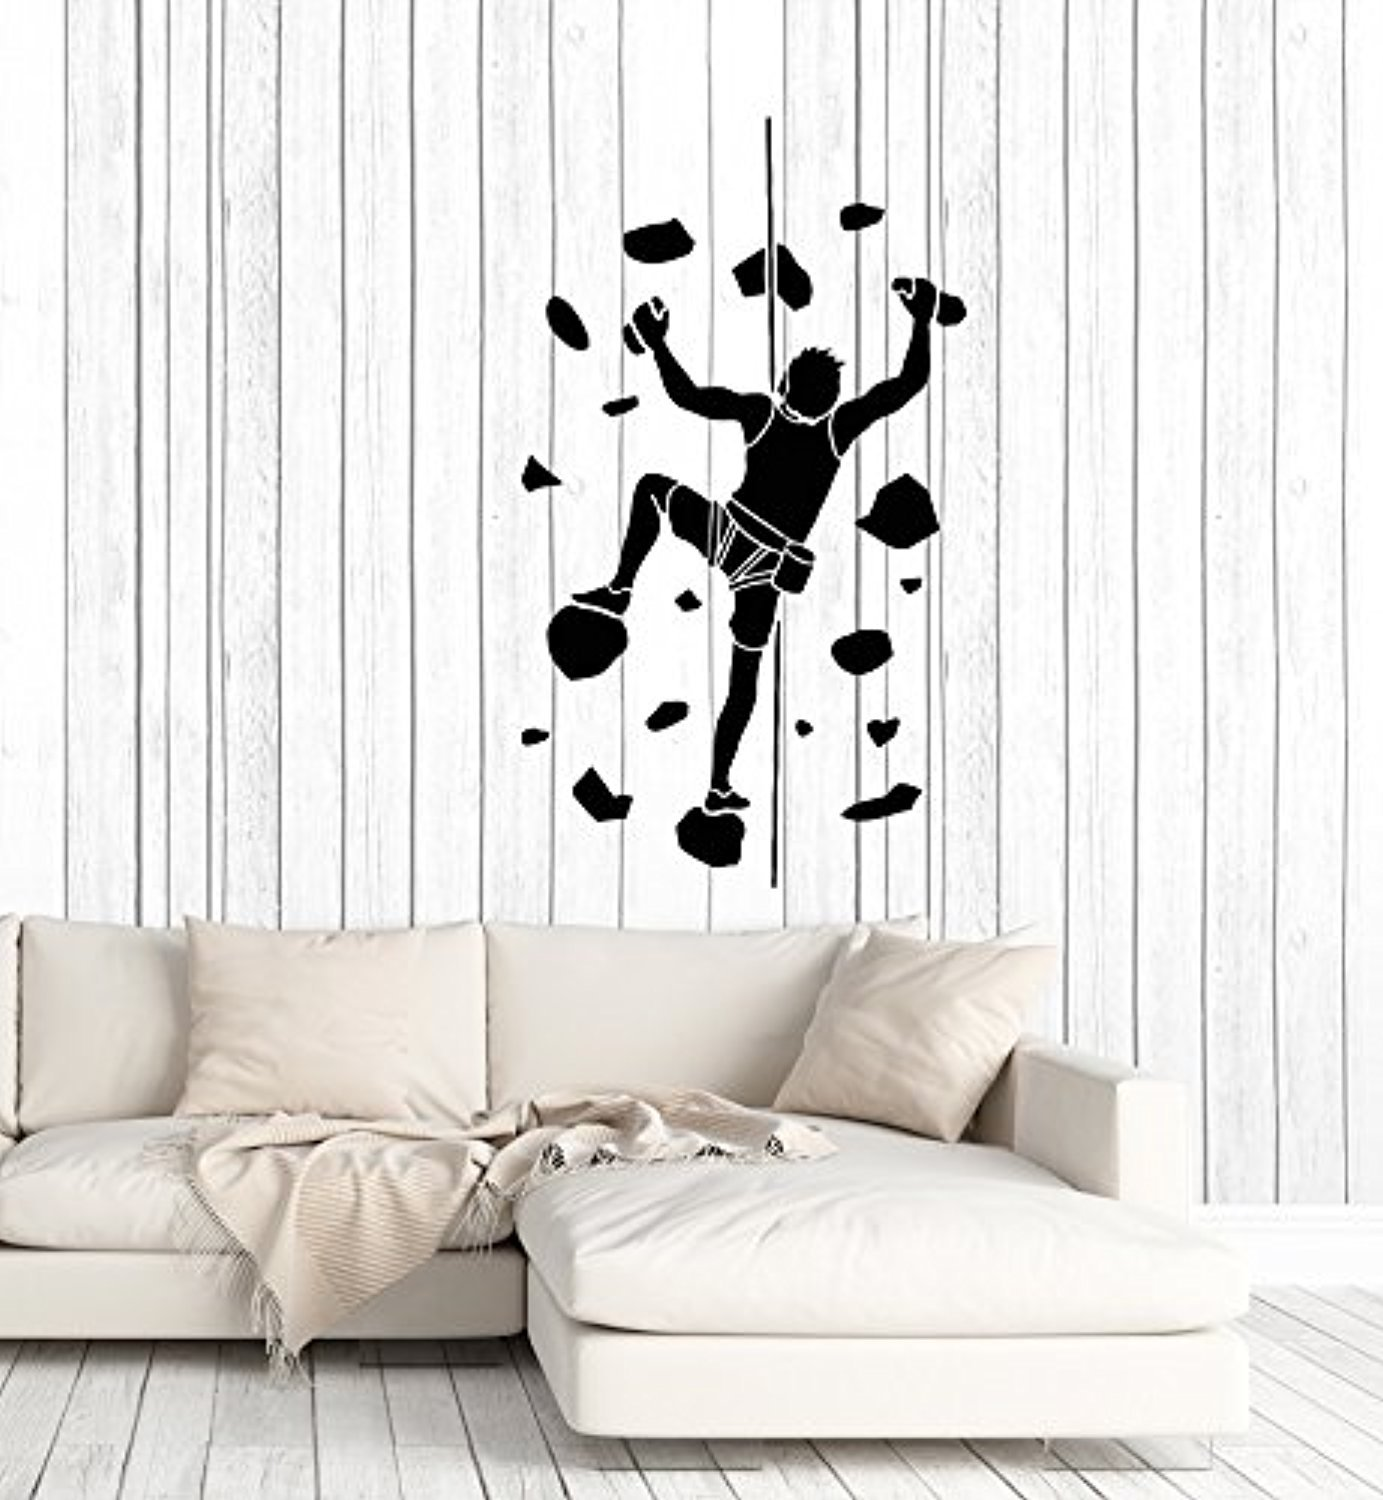 Amazon com amazing home decor large vinyl wall decal man indoor climbing climber room decor stickers mural 464 home kitchen